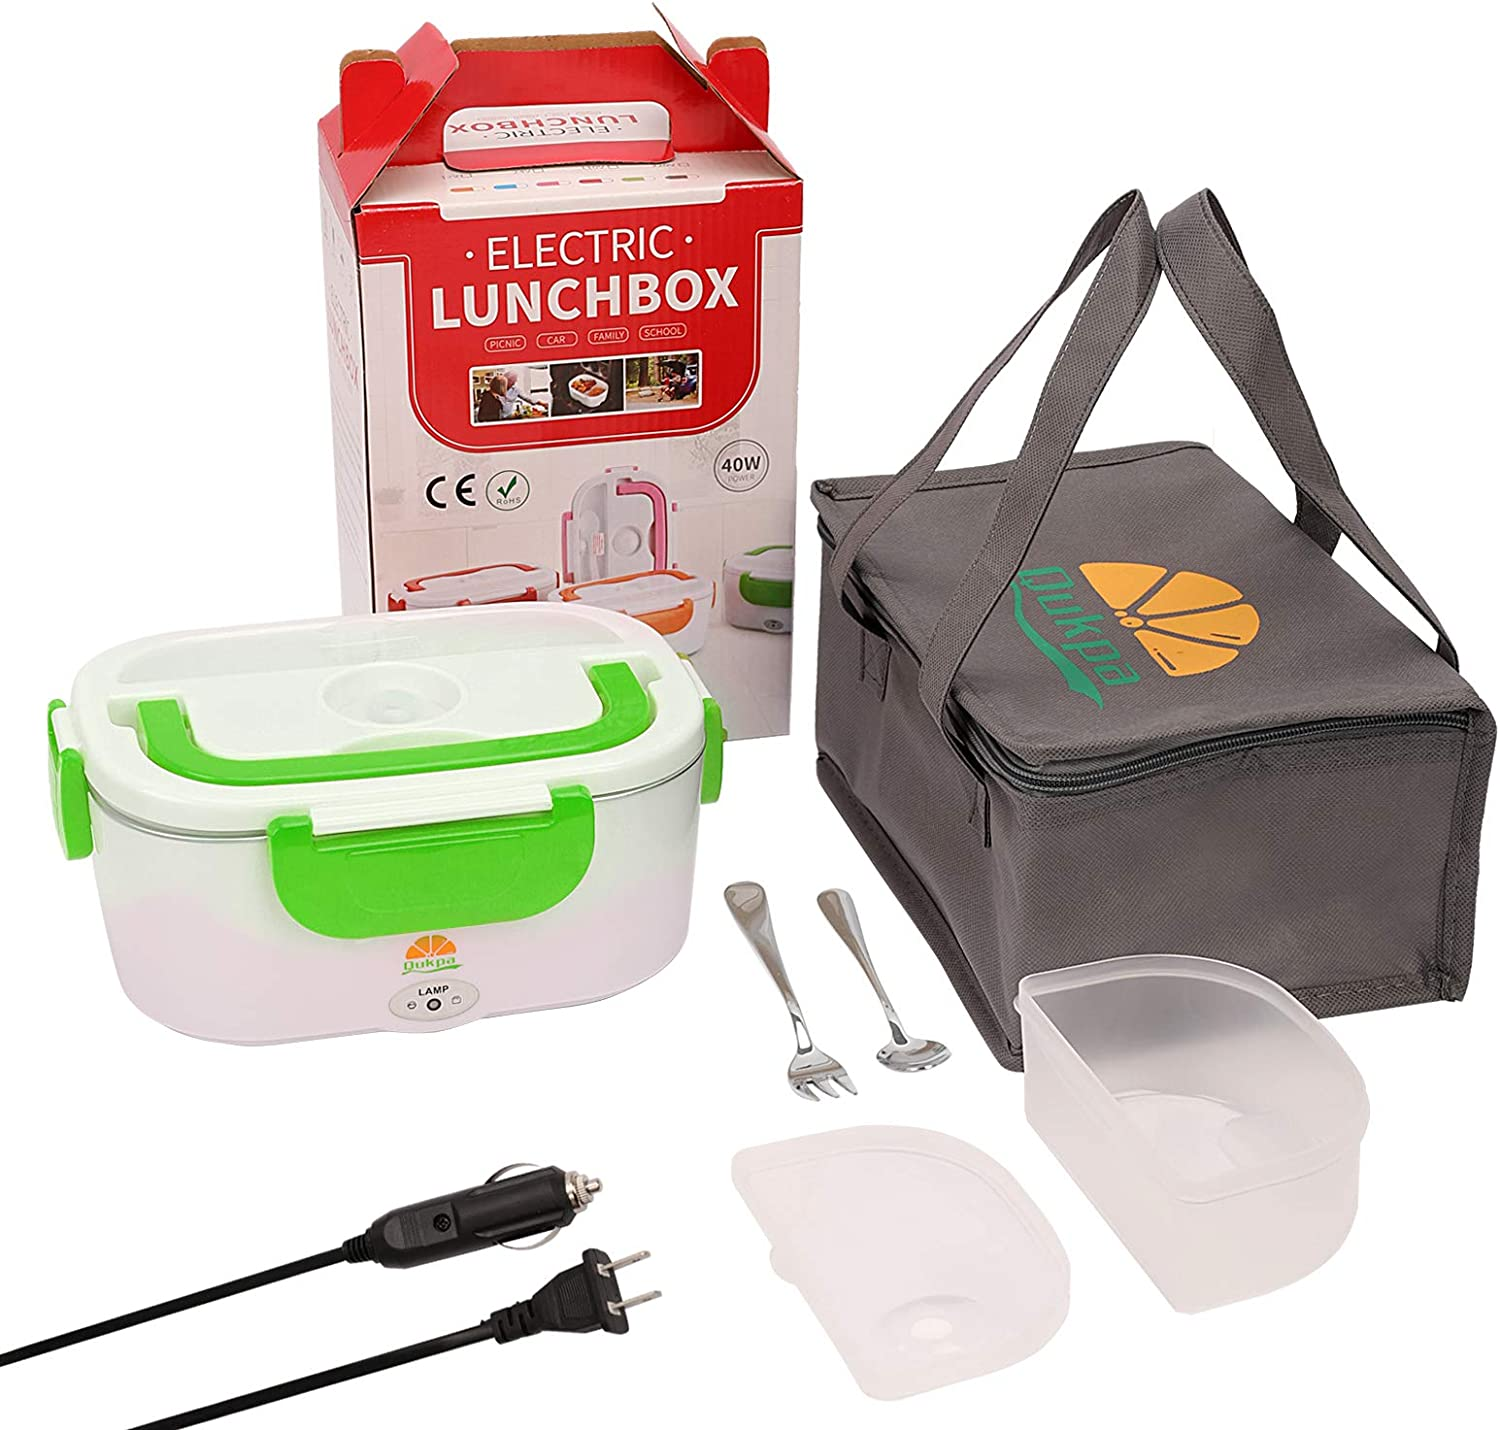 Electric Lunch Box, 3 in 1 Upgrade Car & Truck & Home Portable Food Heater 2 Compartments, 12V & 24V & 110V Mini Lunchbox with 304 Stainless Steel Fork & Spoon and Carry Bag (Green)